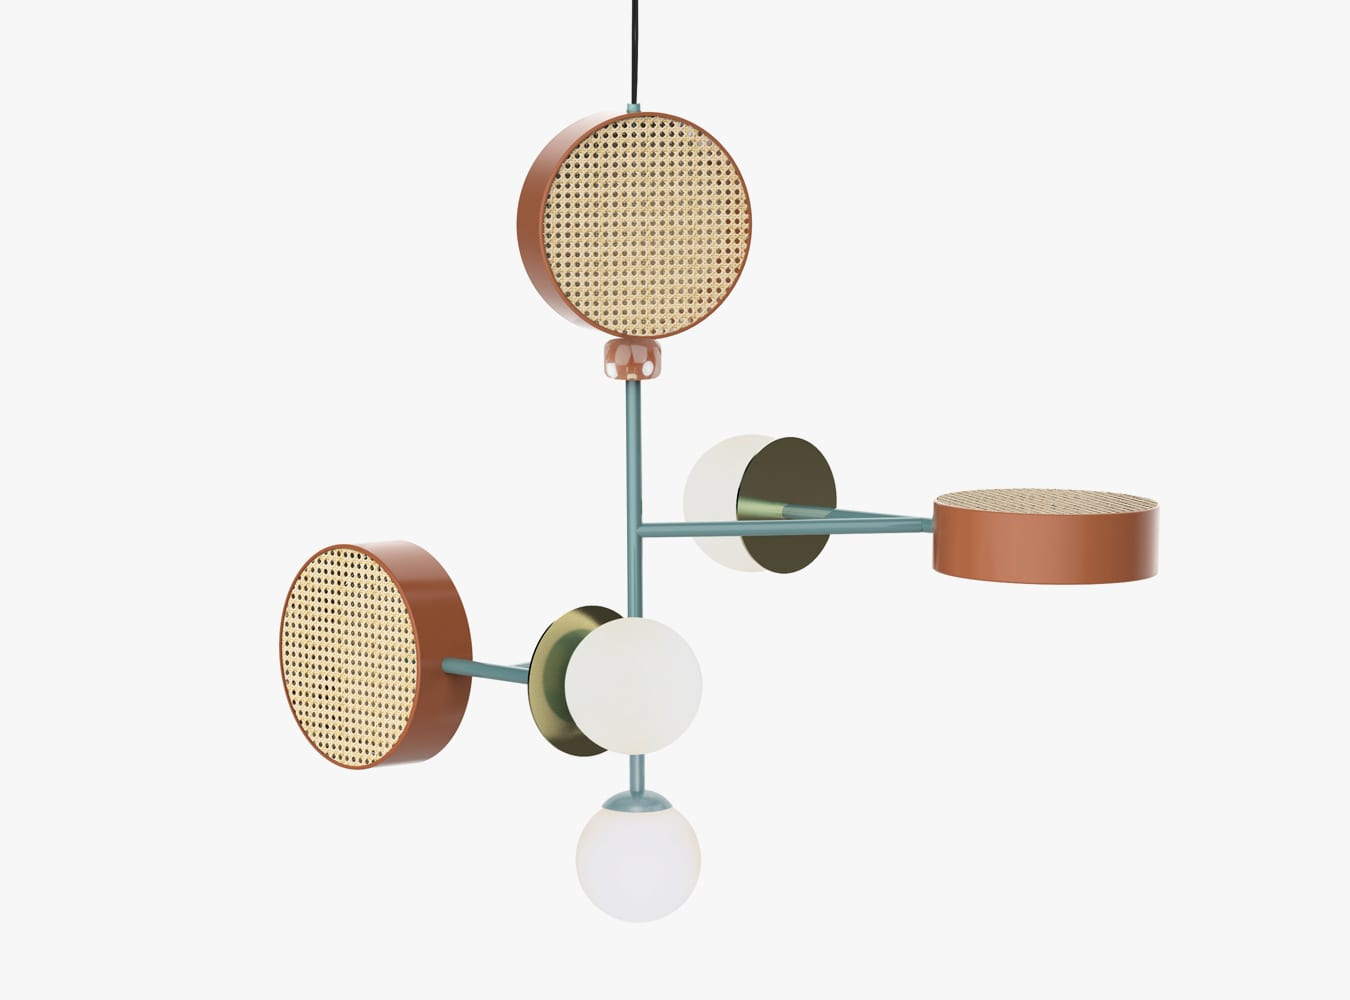 Monaco Collection from Utu Lighting at Maison & Objet 2019 | Yellowtrace